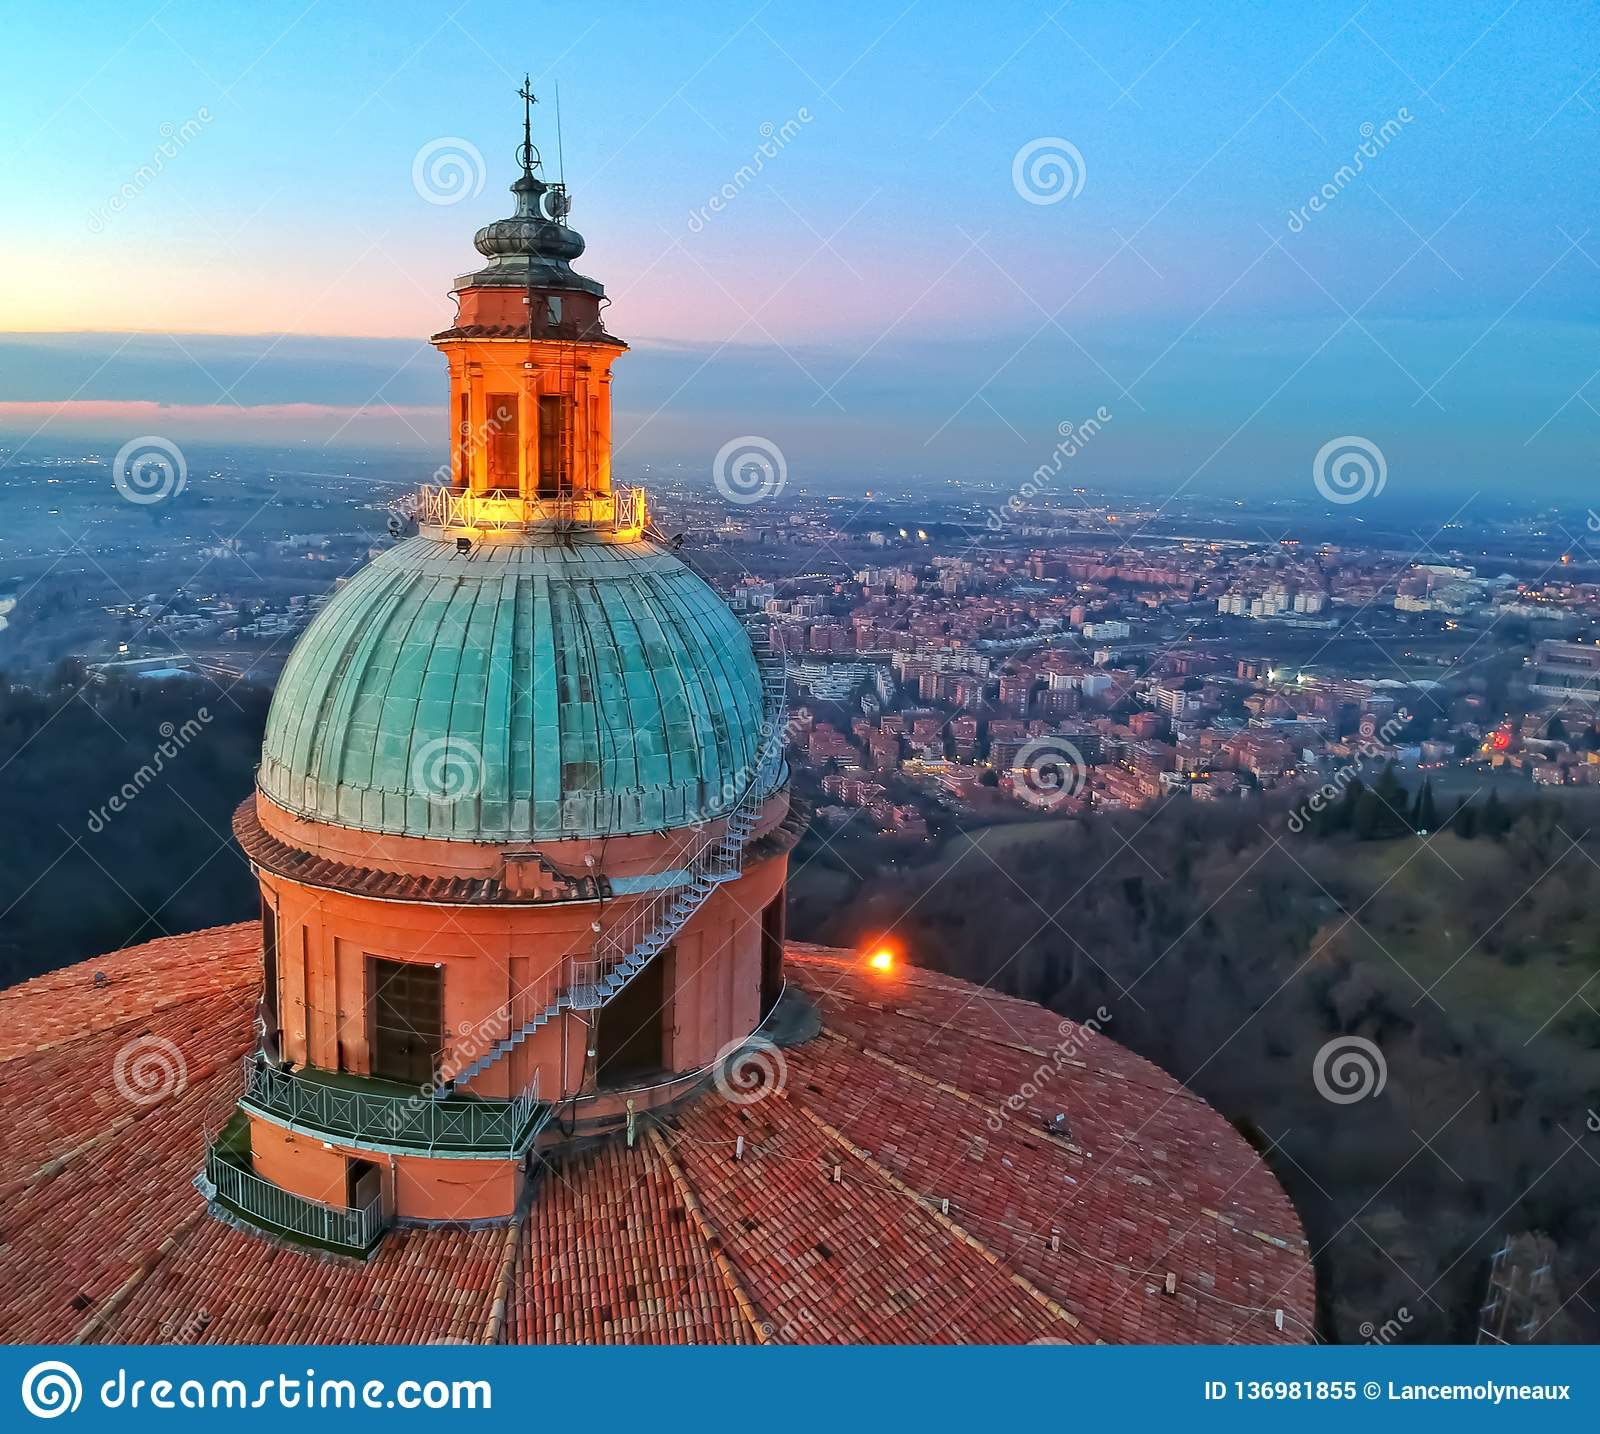 Basilica dome overlooking the city of Bologna.